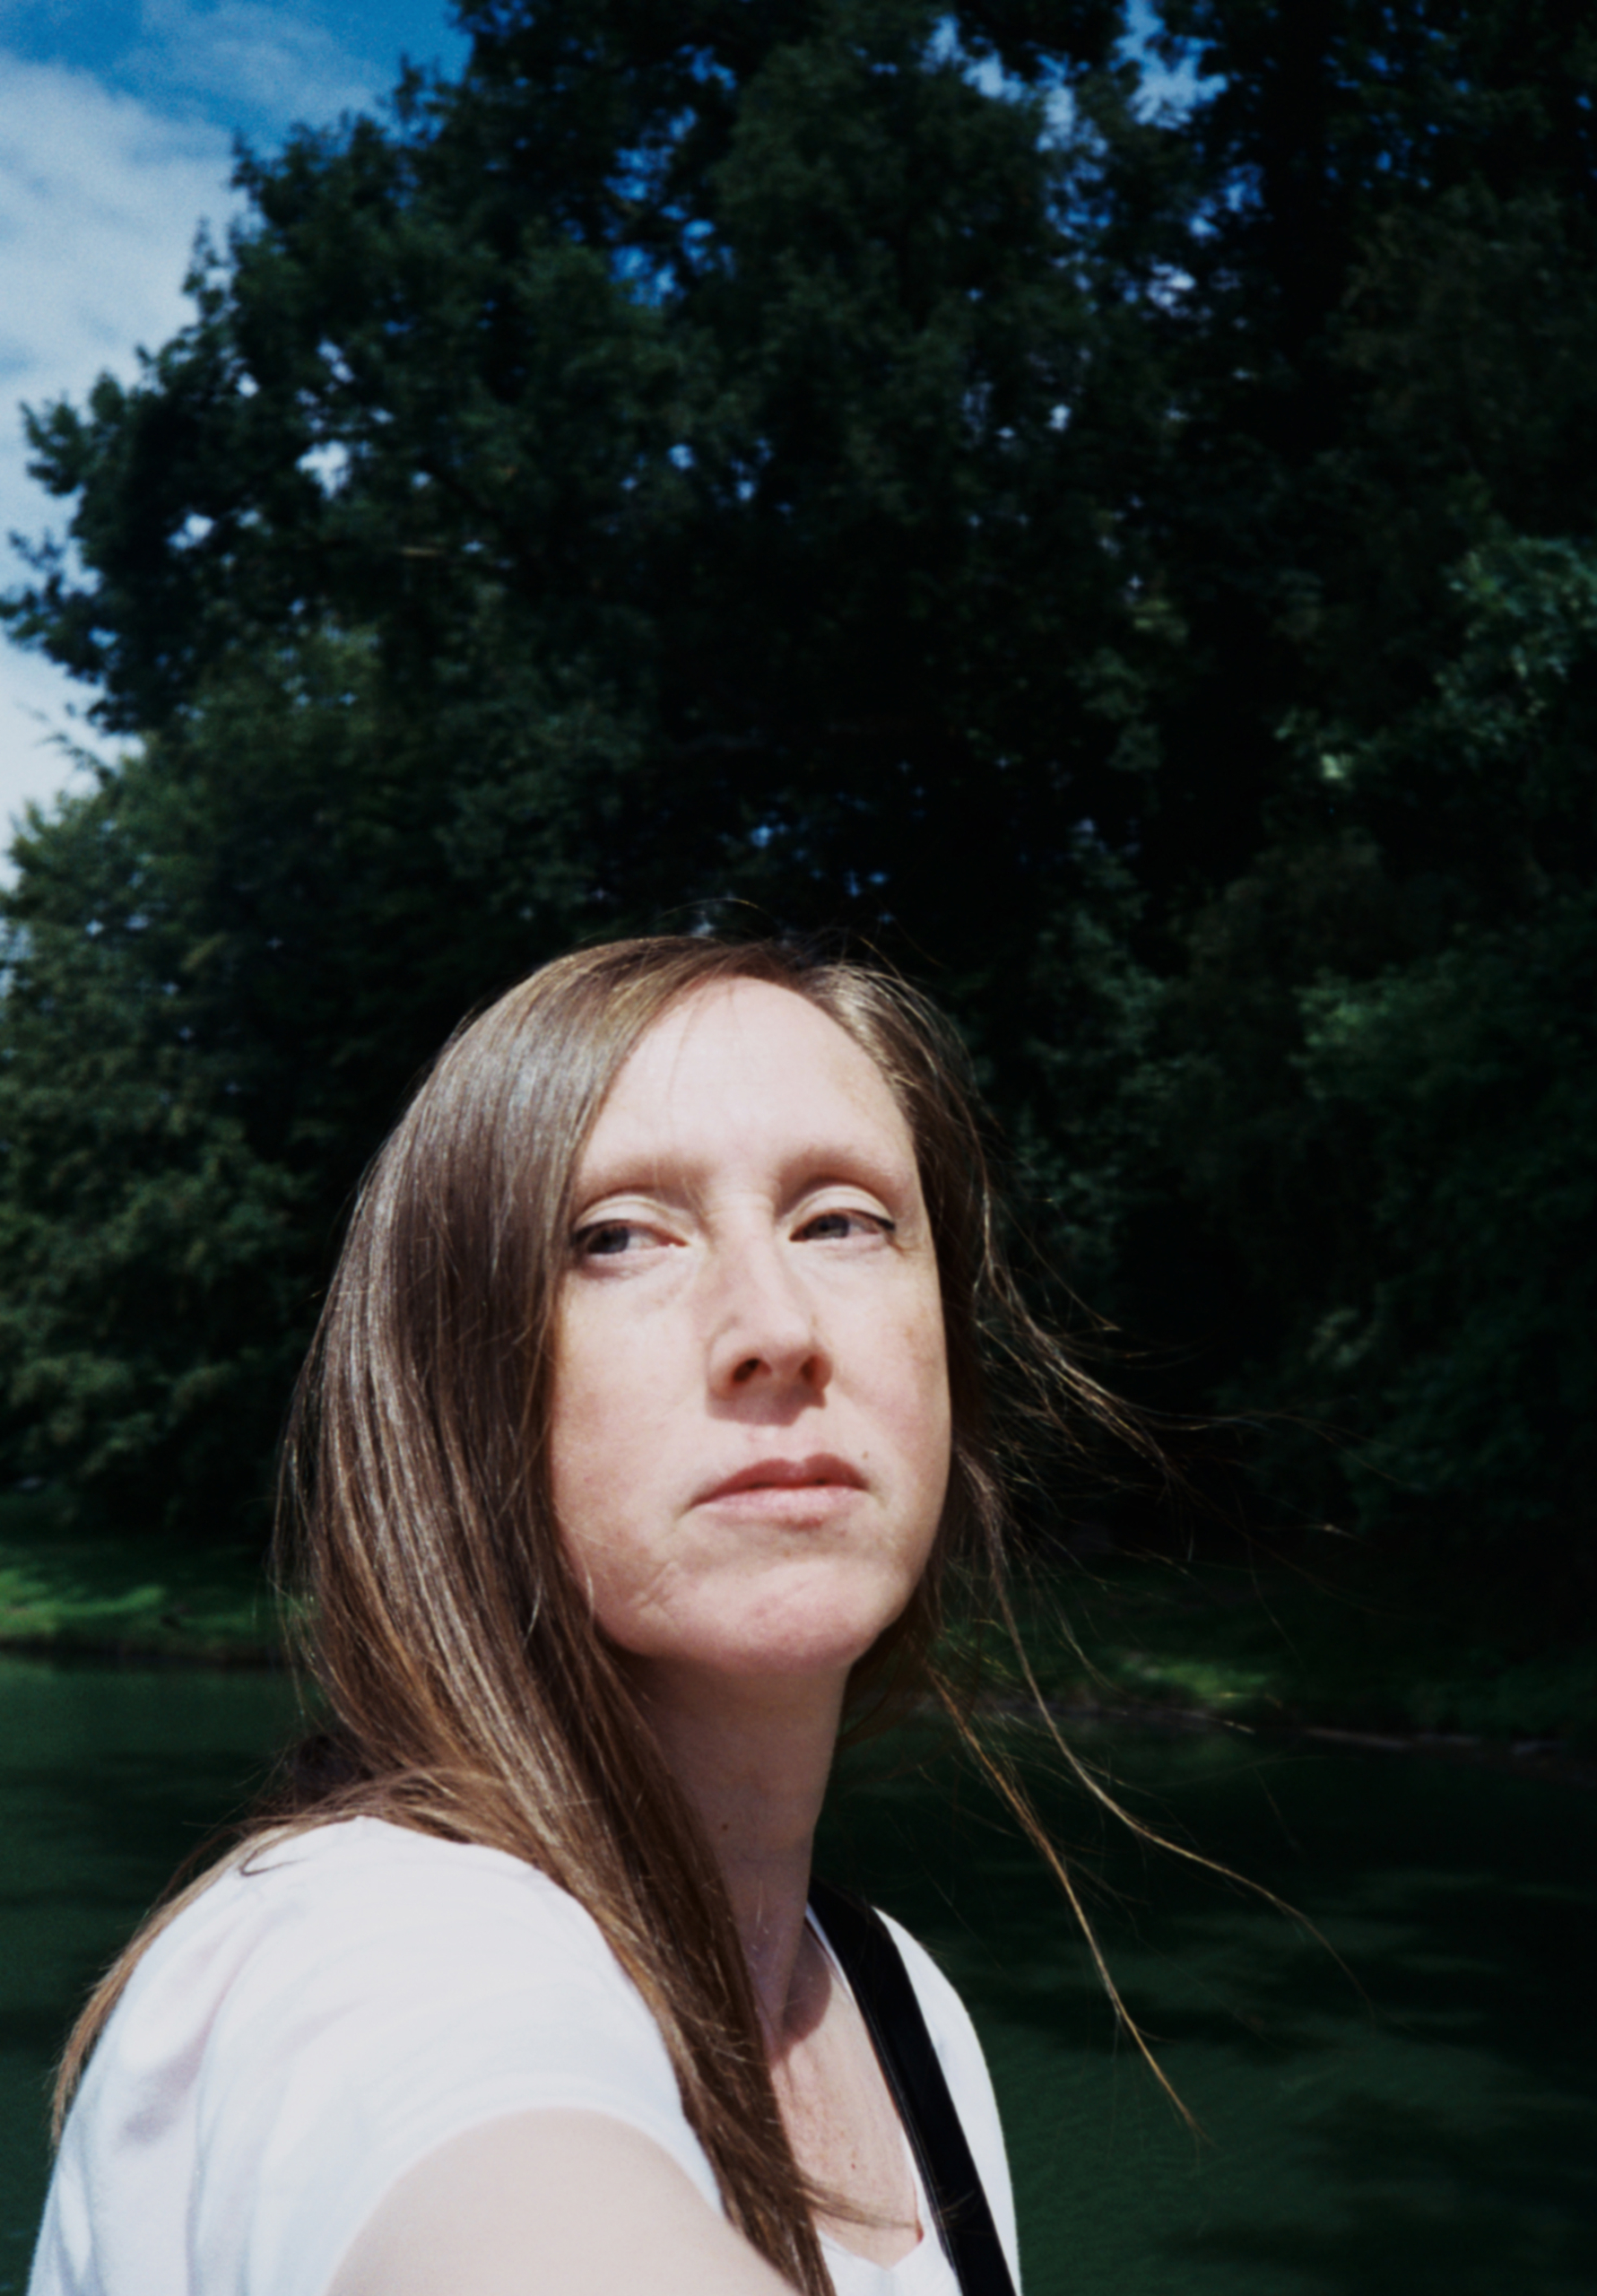 Lique Schoot, Self-portrait 20 07 21